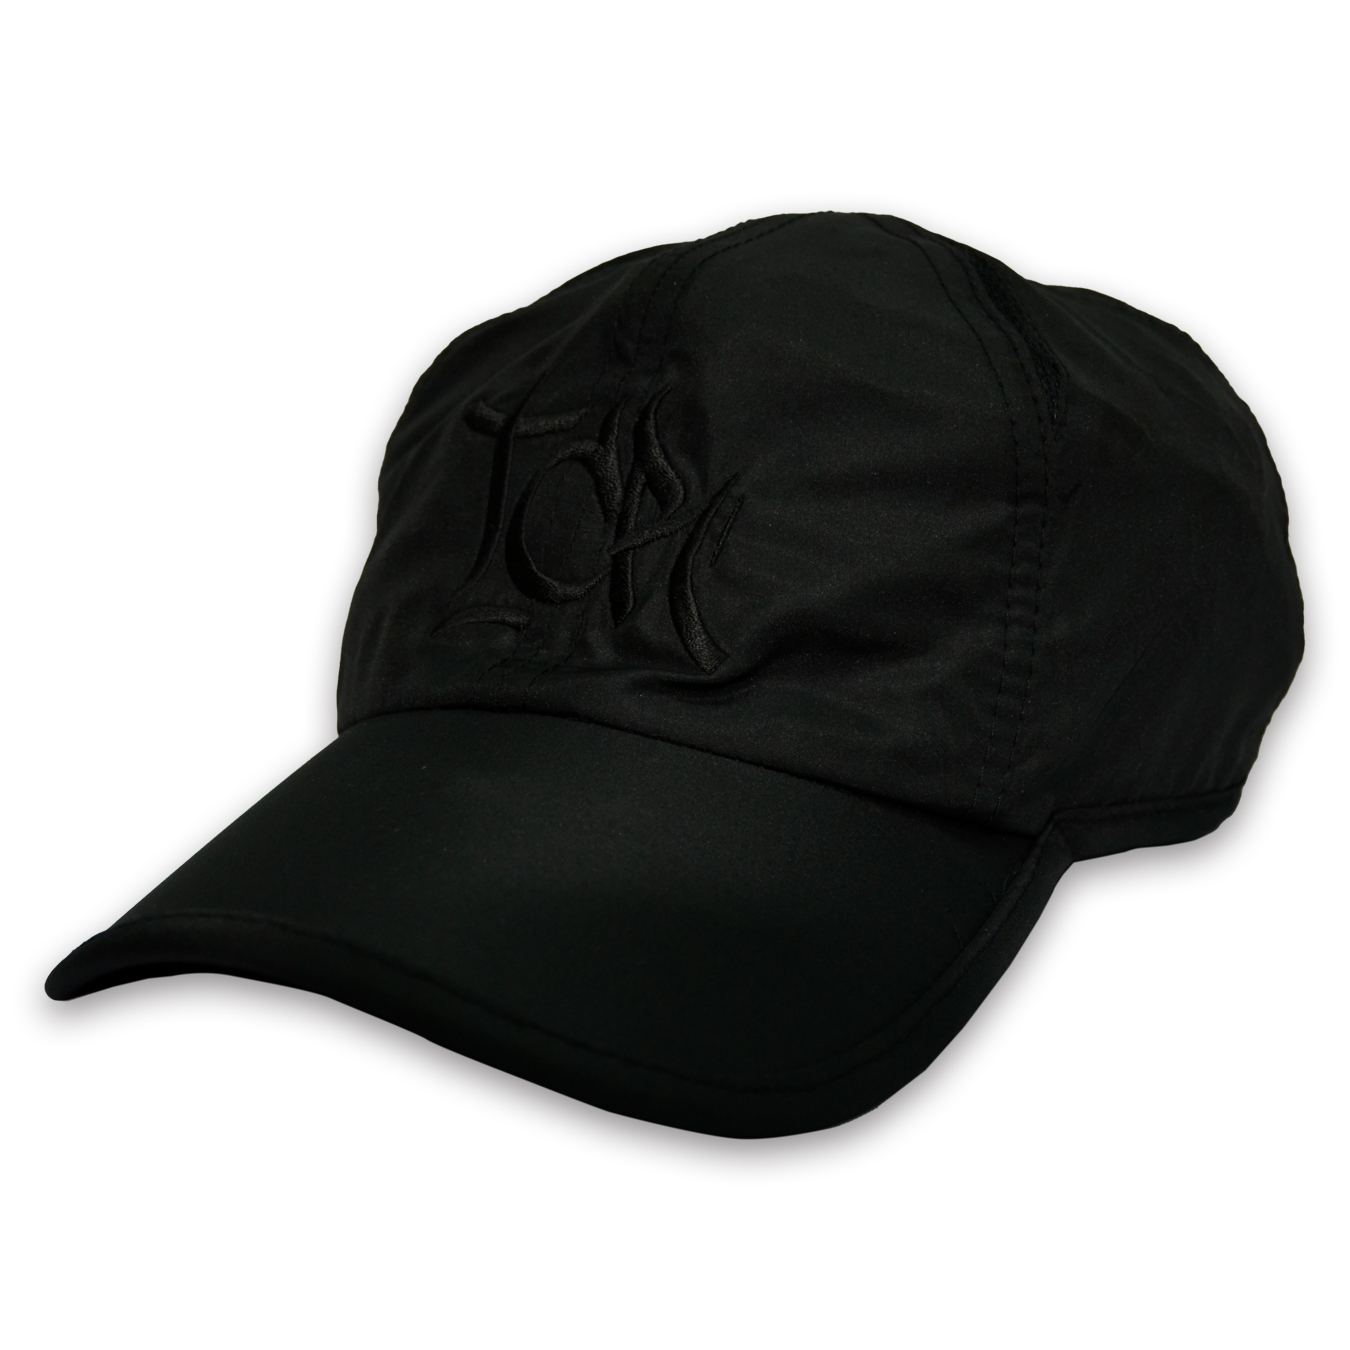 T.C.R BIG LOGO SPORTS SHELL CAP - BLACK/BLACK